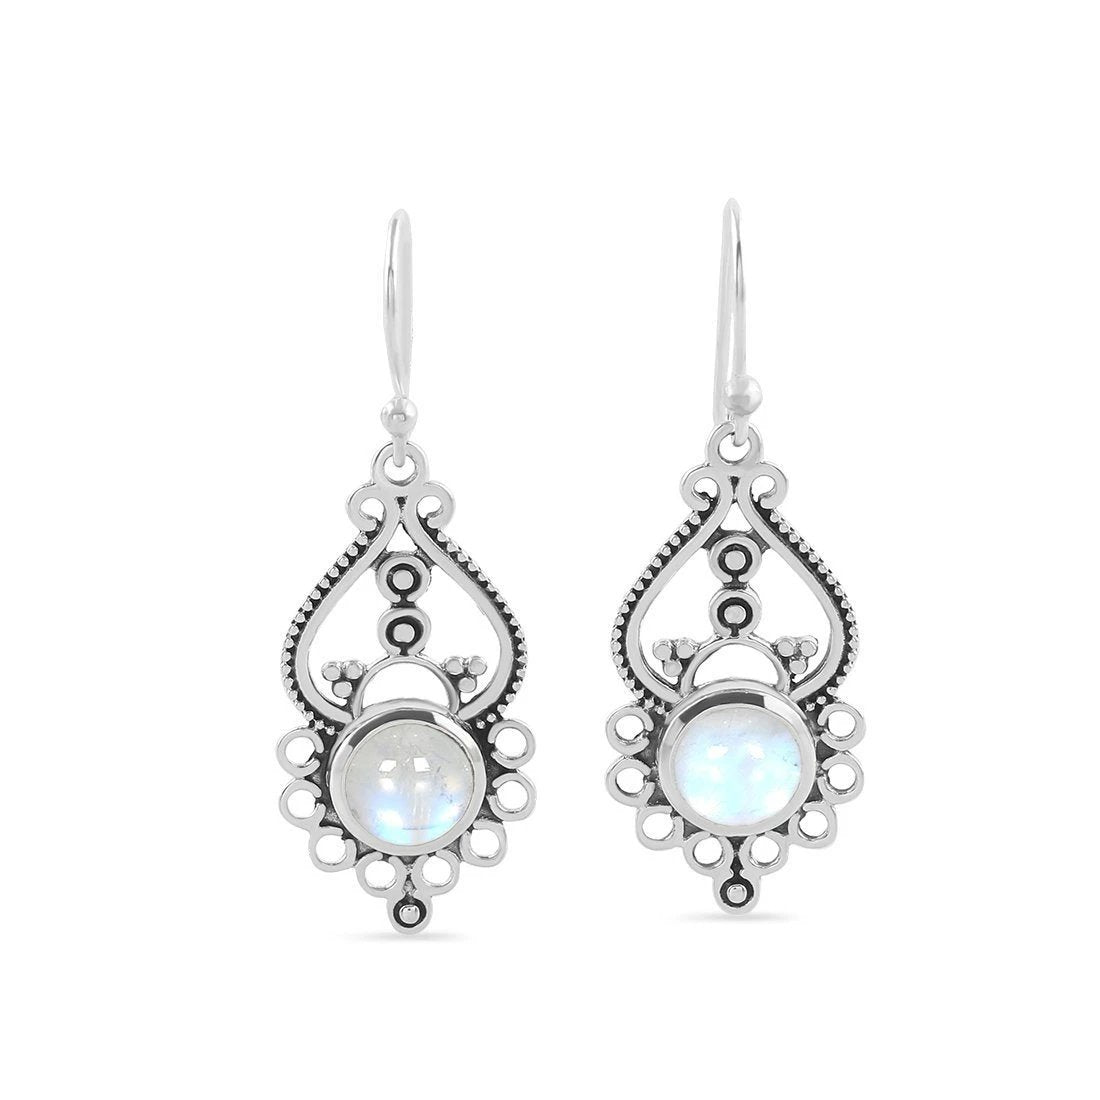 925 Silver Earrings With Moonstone